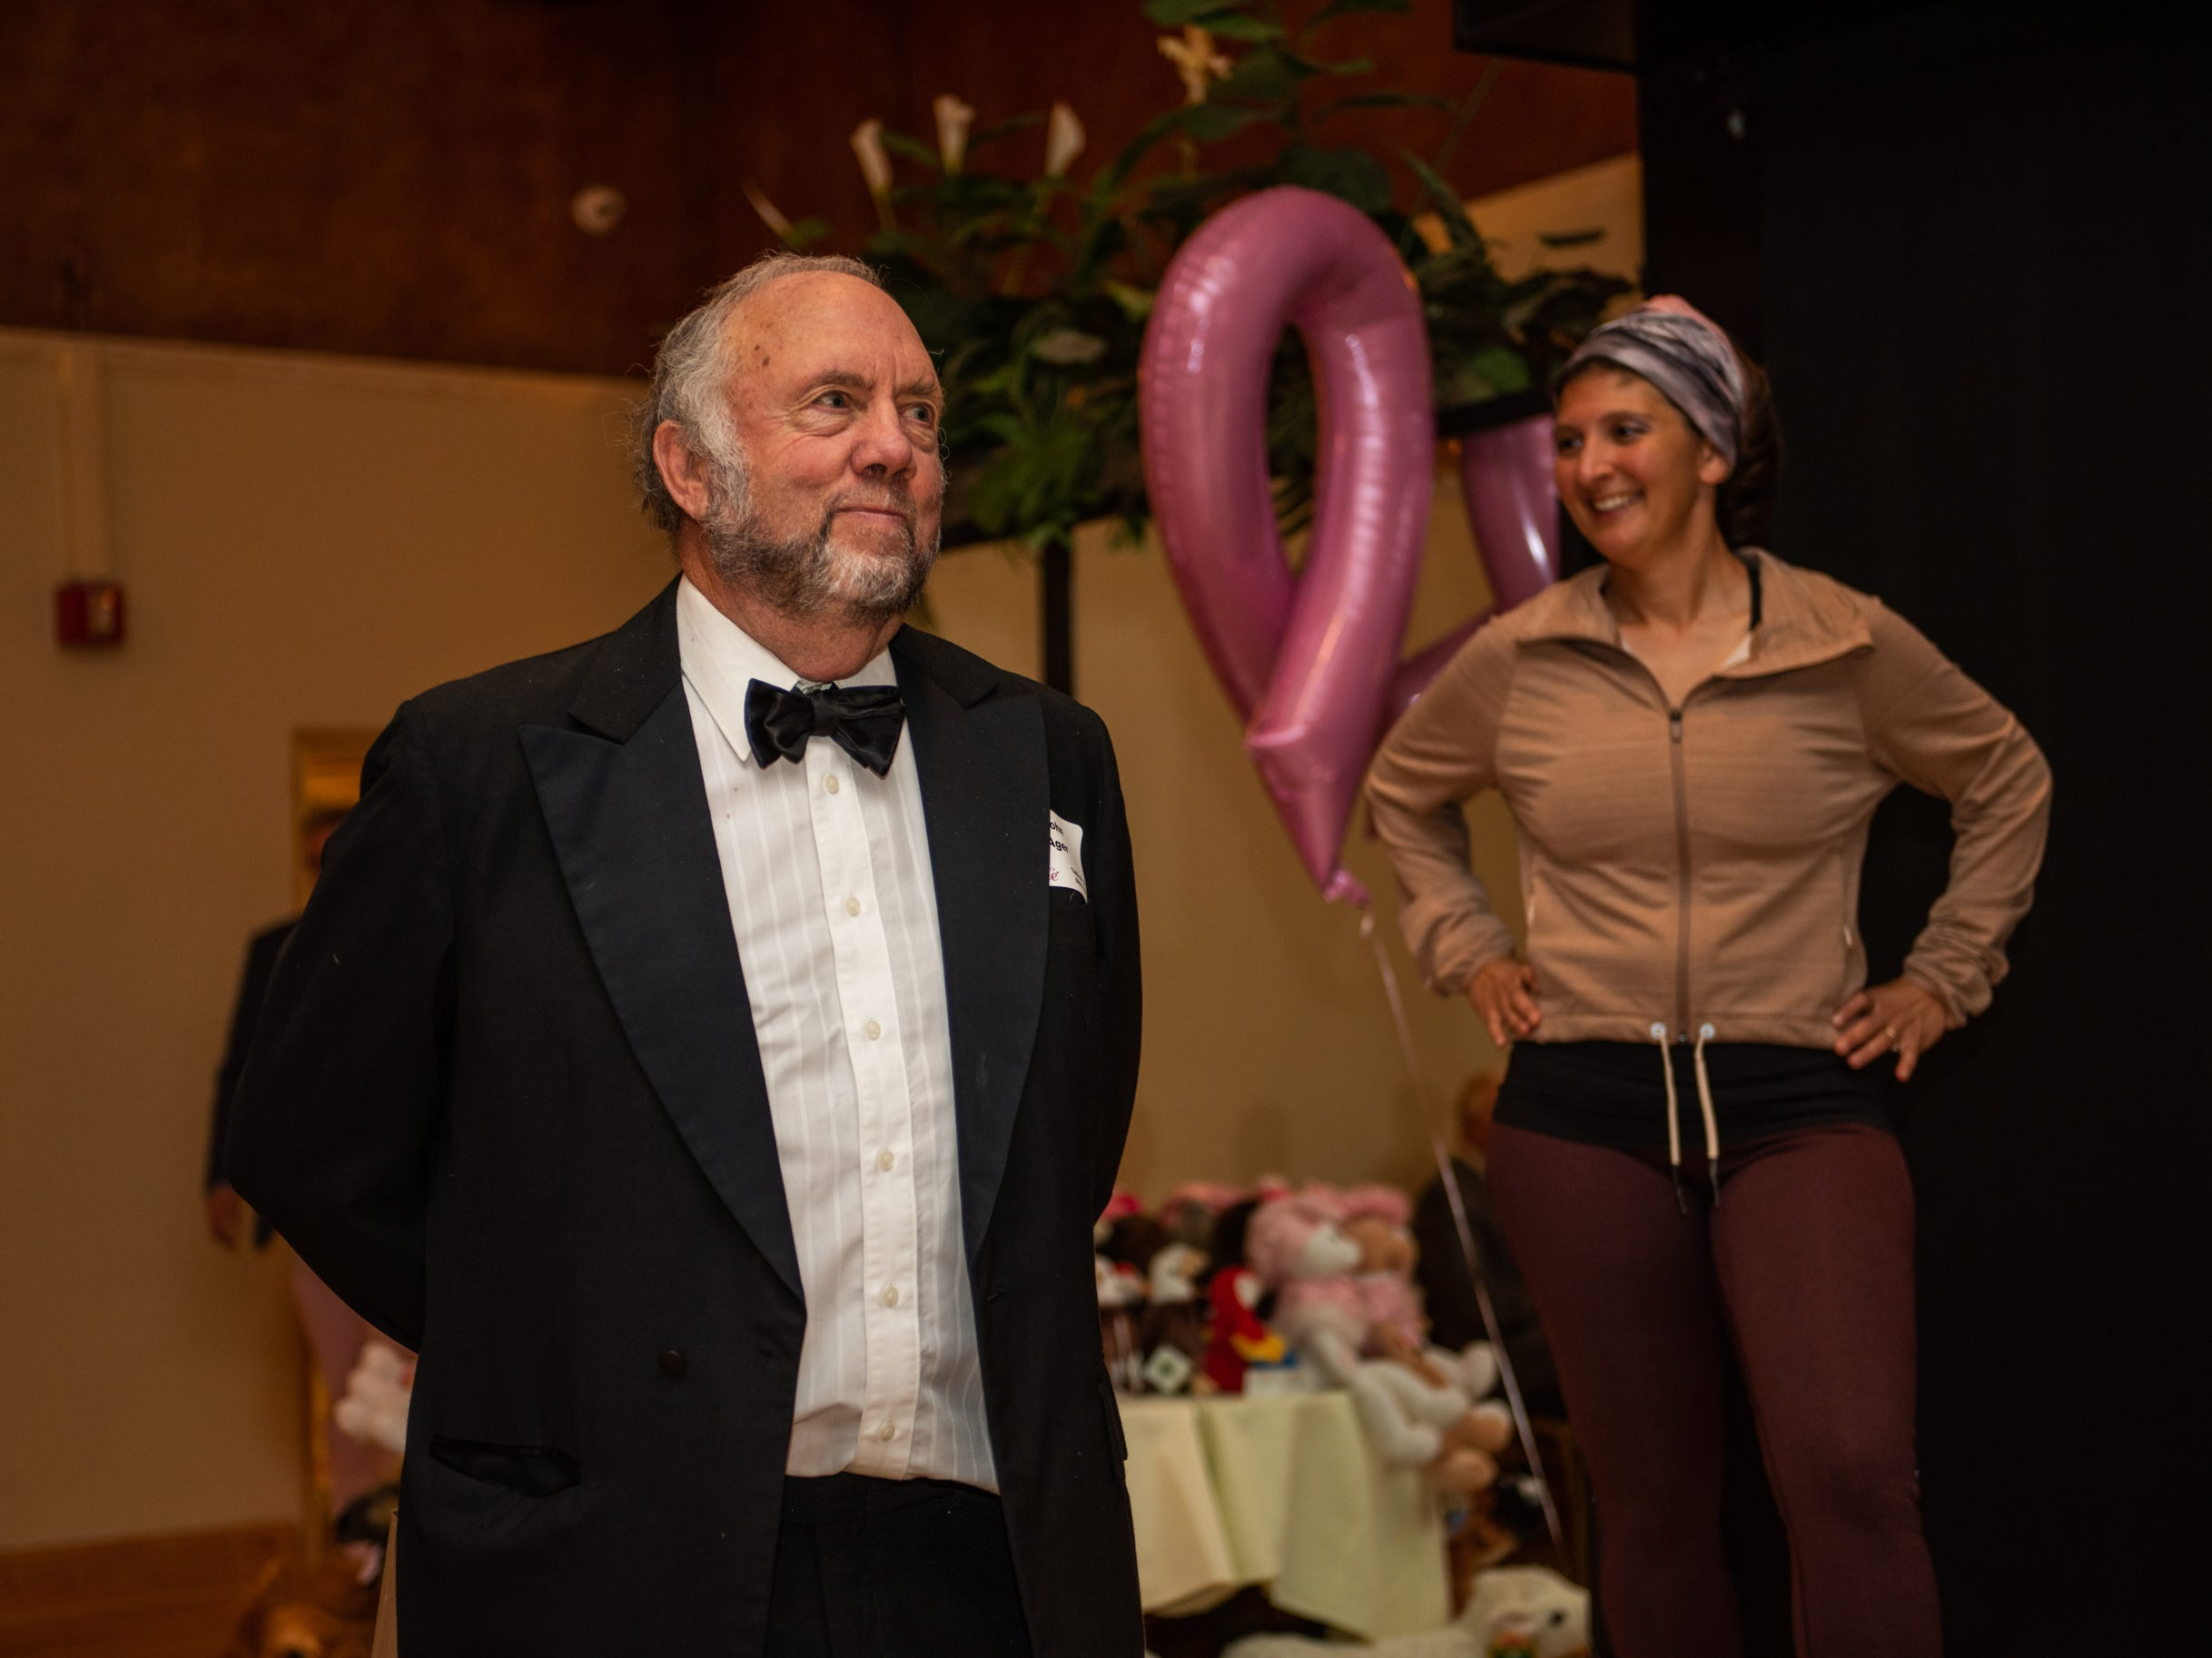 State Rep. John Ager attends the Here's Hope Fashion Show fundraiser for the Hope Chest for Women on Oct. 20, 2018, at the Asheville Event Centre.